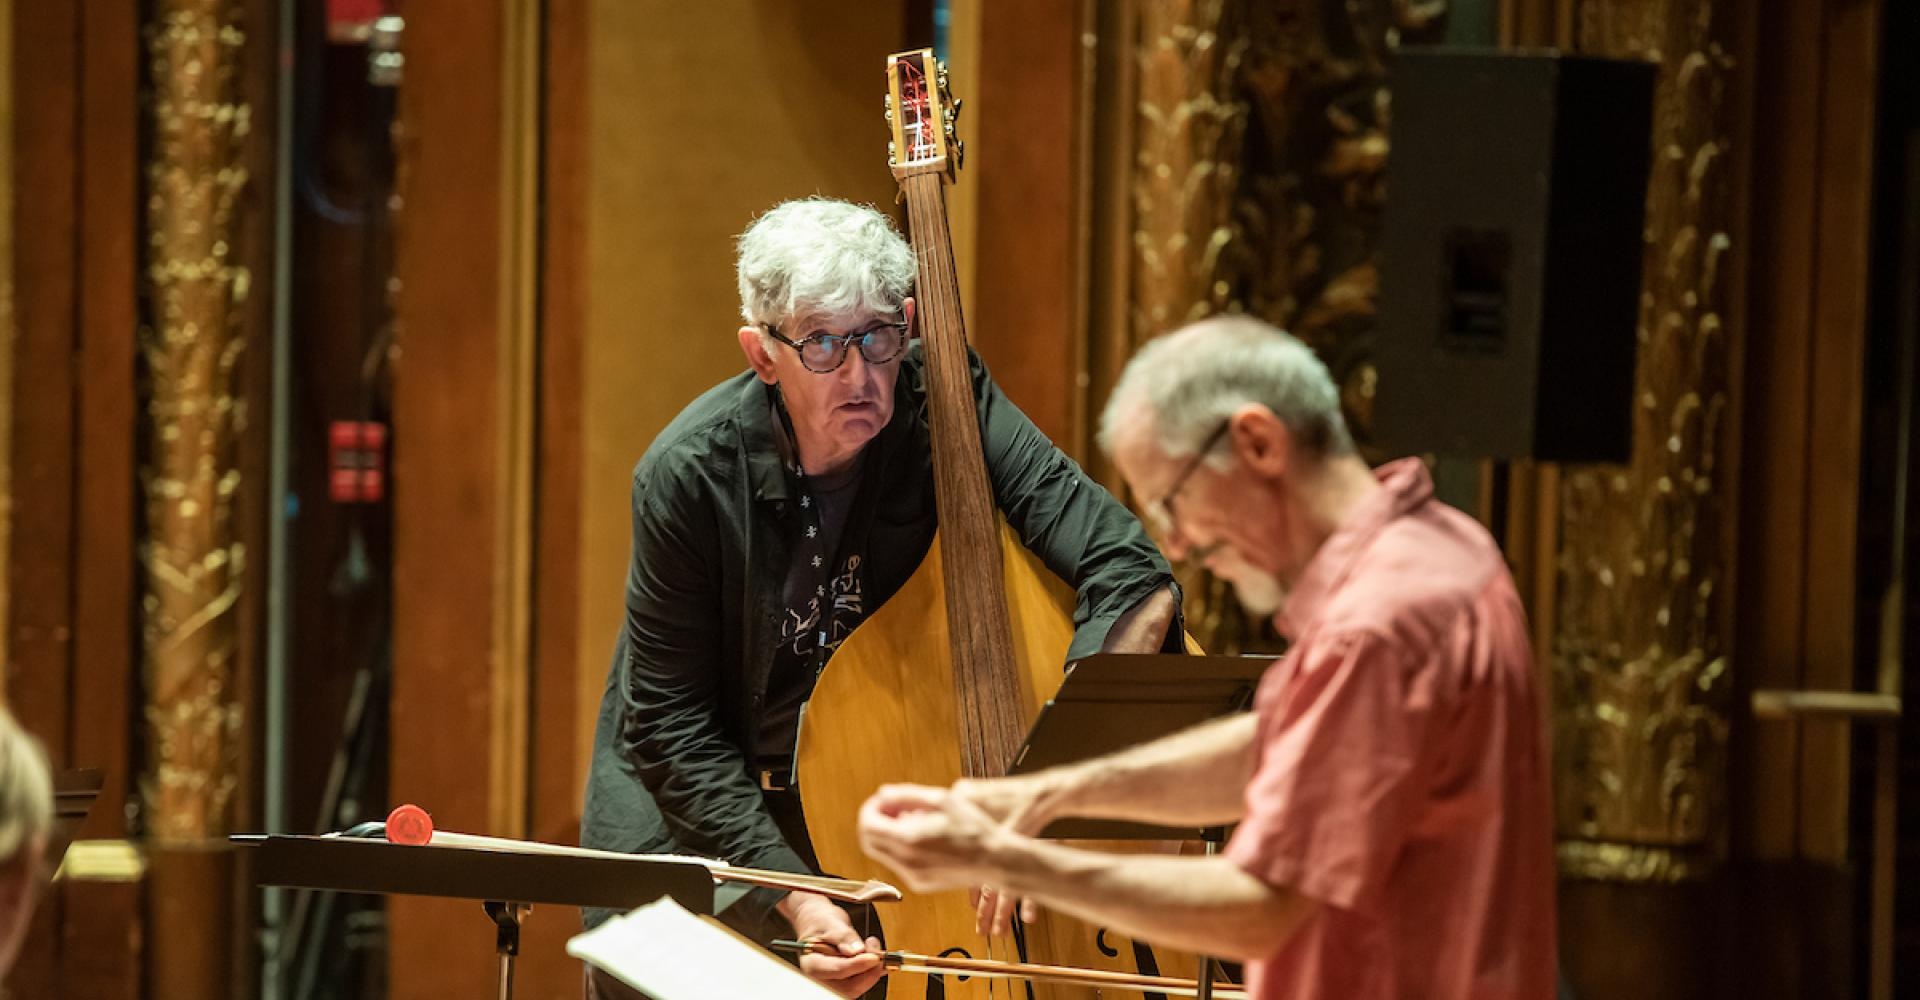 Mark Dresser plays bass and looks closely at conductor Steve Drury.